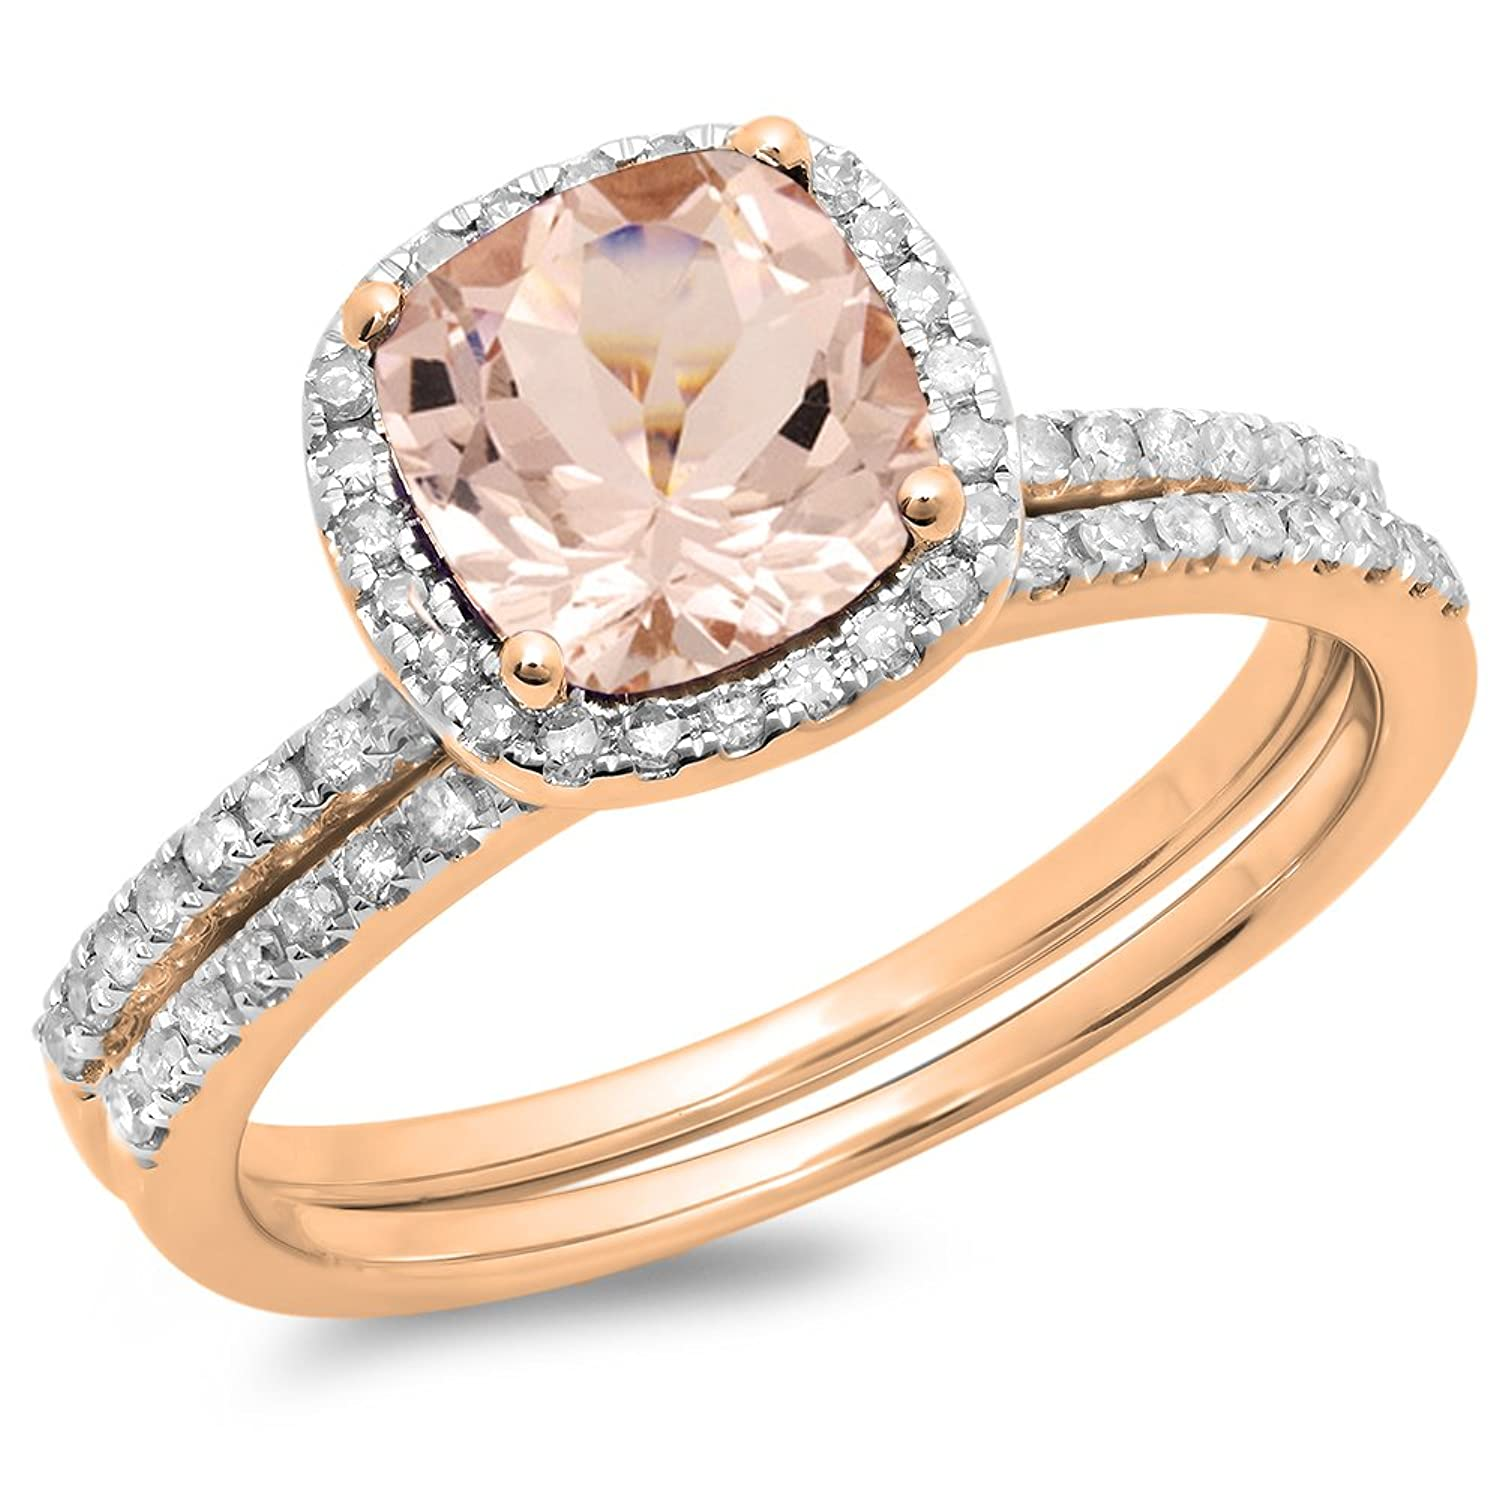 725825cddbd5 10K Gold Cushion Cut Morganite   Round Cut White Diamond Ladies Bridal Halo Engagement  Ring Set